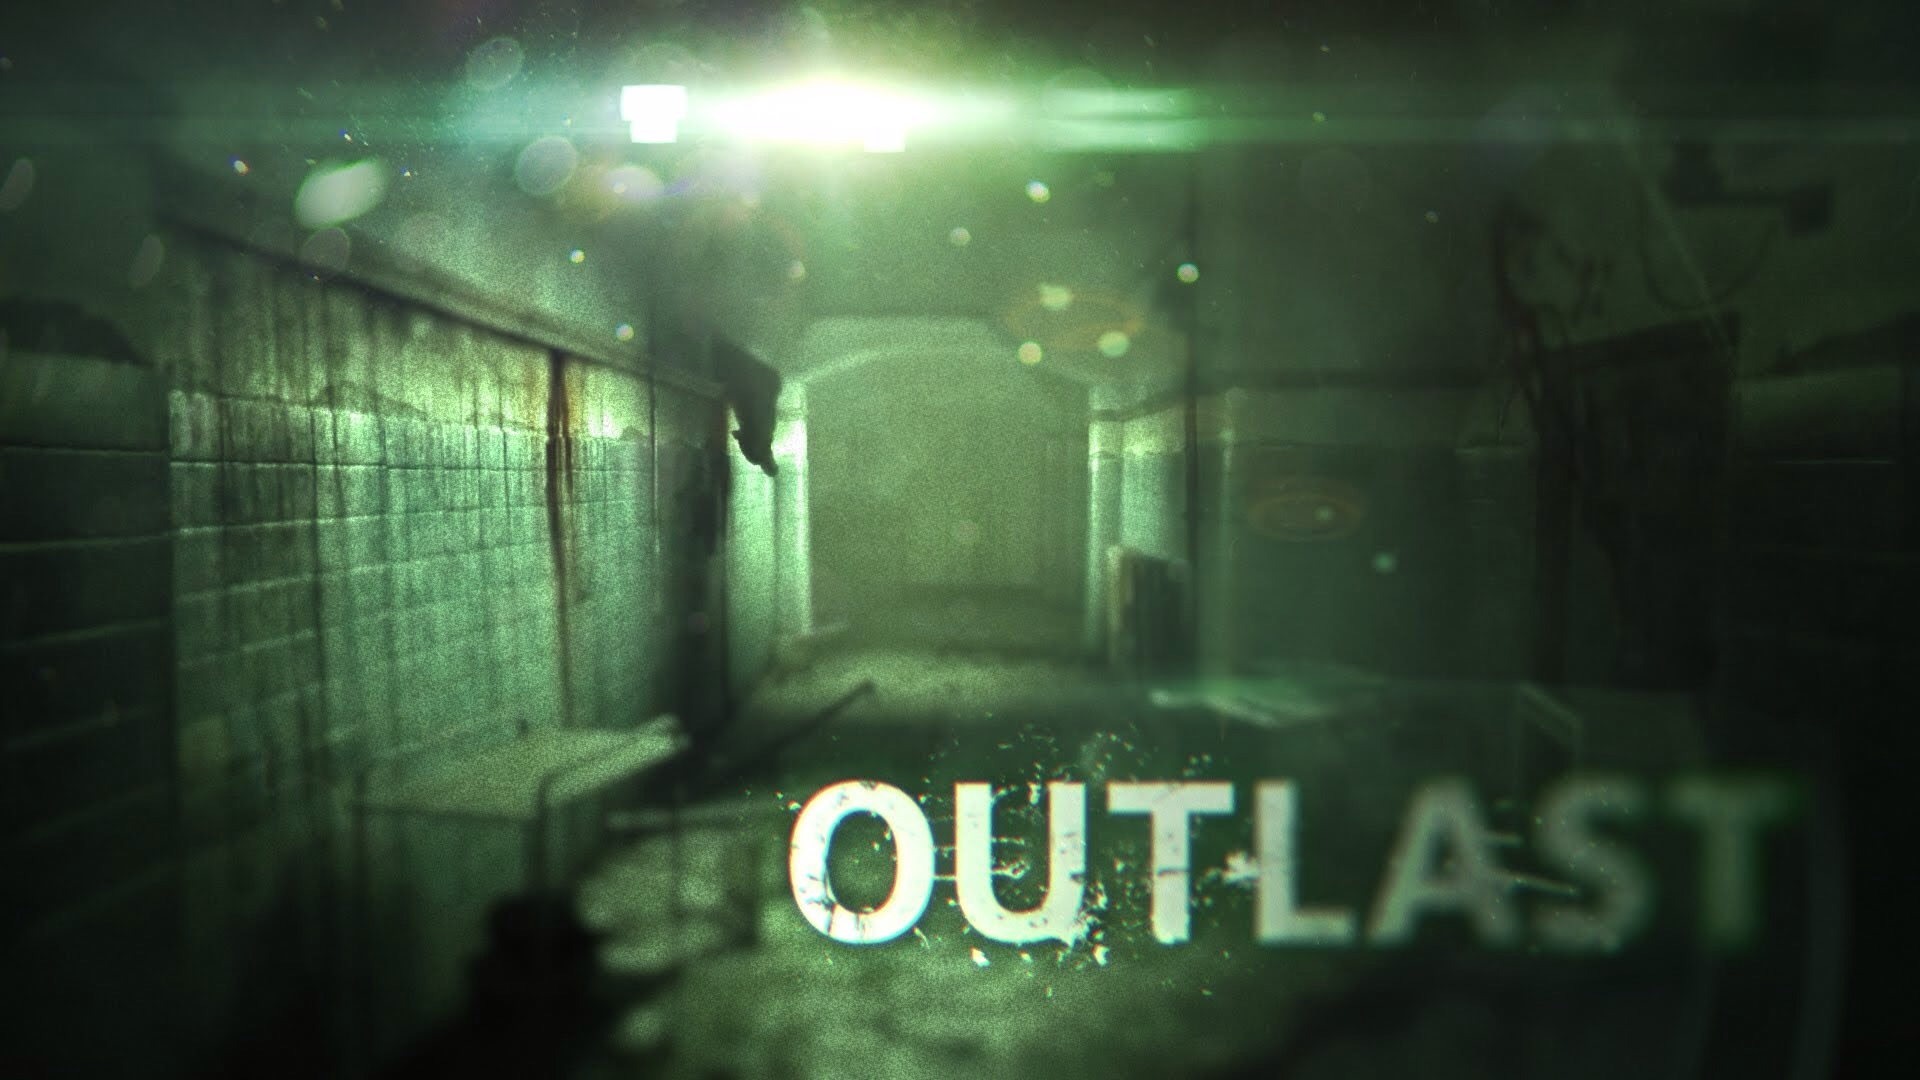 Outlast 바탕화면